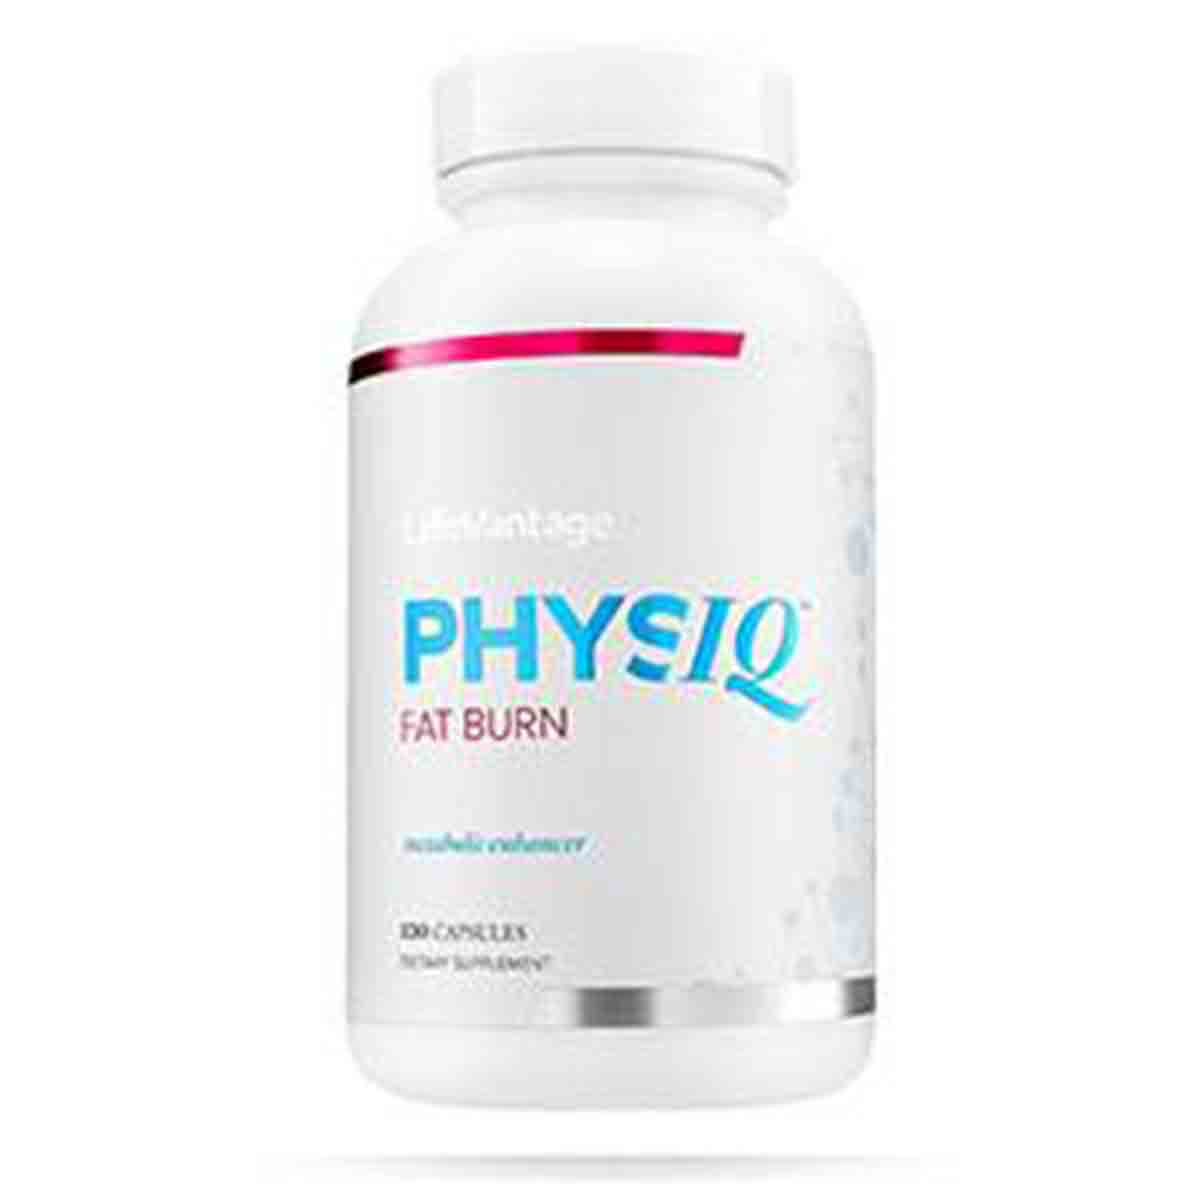 LifeVantage PhysIQ Fat Burn